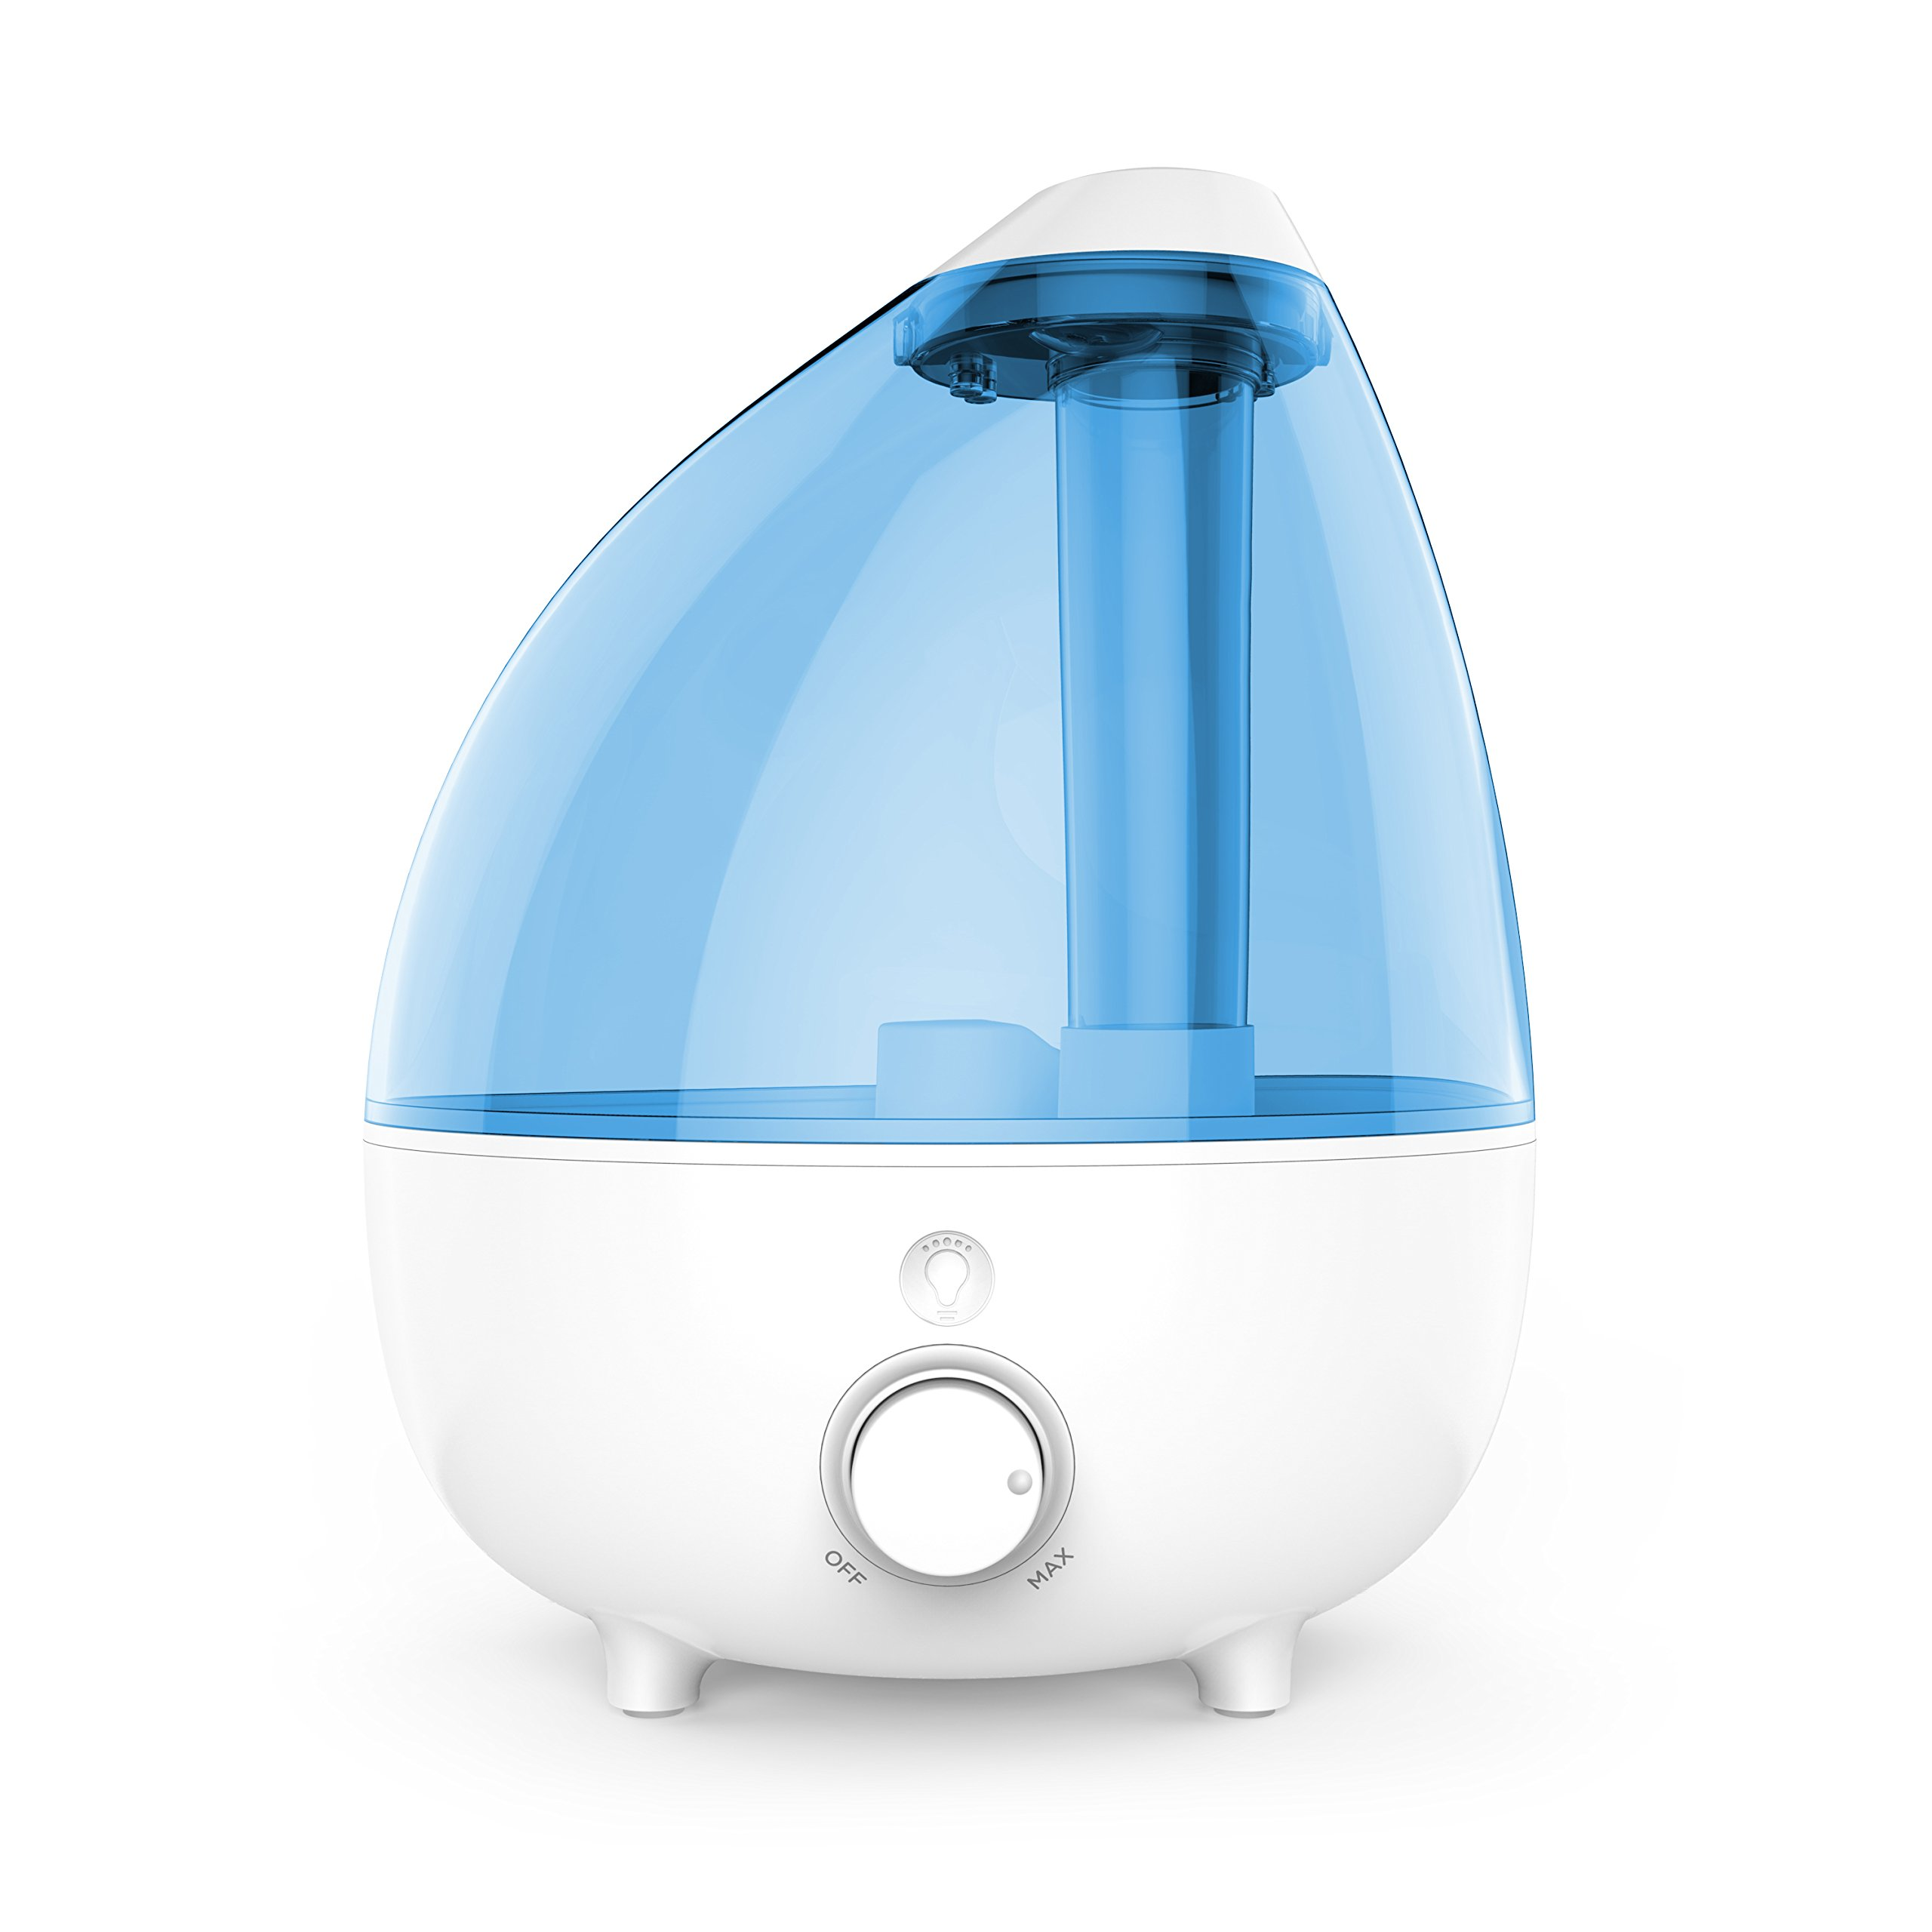 MistAire XL Ultrasonic Cool Mist Humidifier for Large Rooms – 1-Gallon Water Tank with Variable Mist Control, Automatic Shut-Off, and Soft Night Light Options by Pure Enrichment